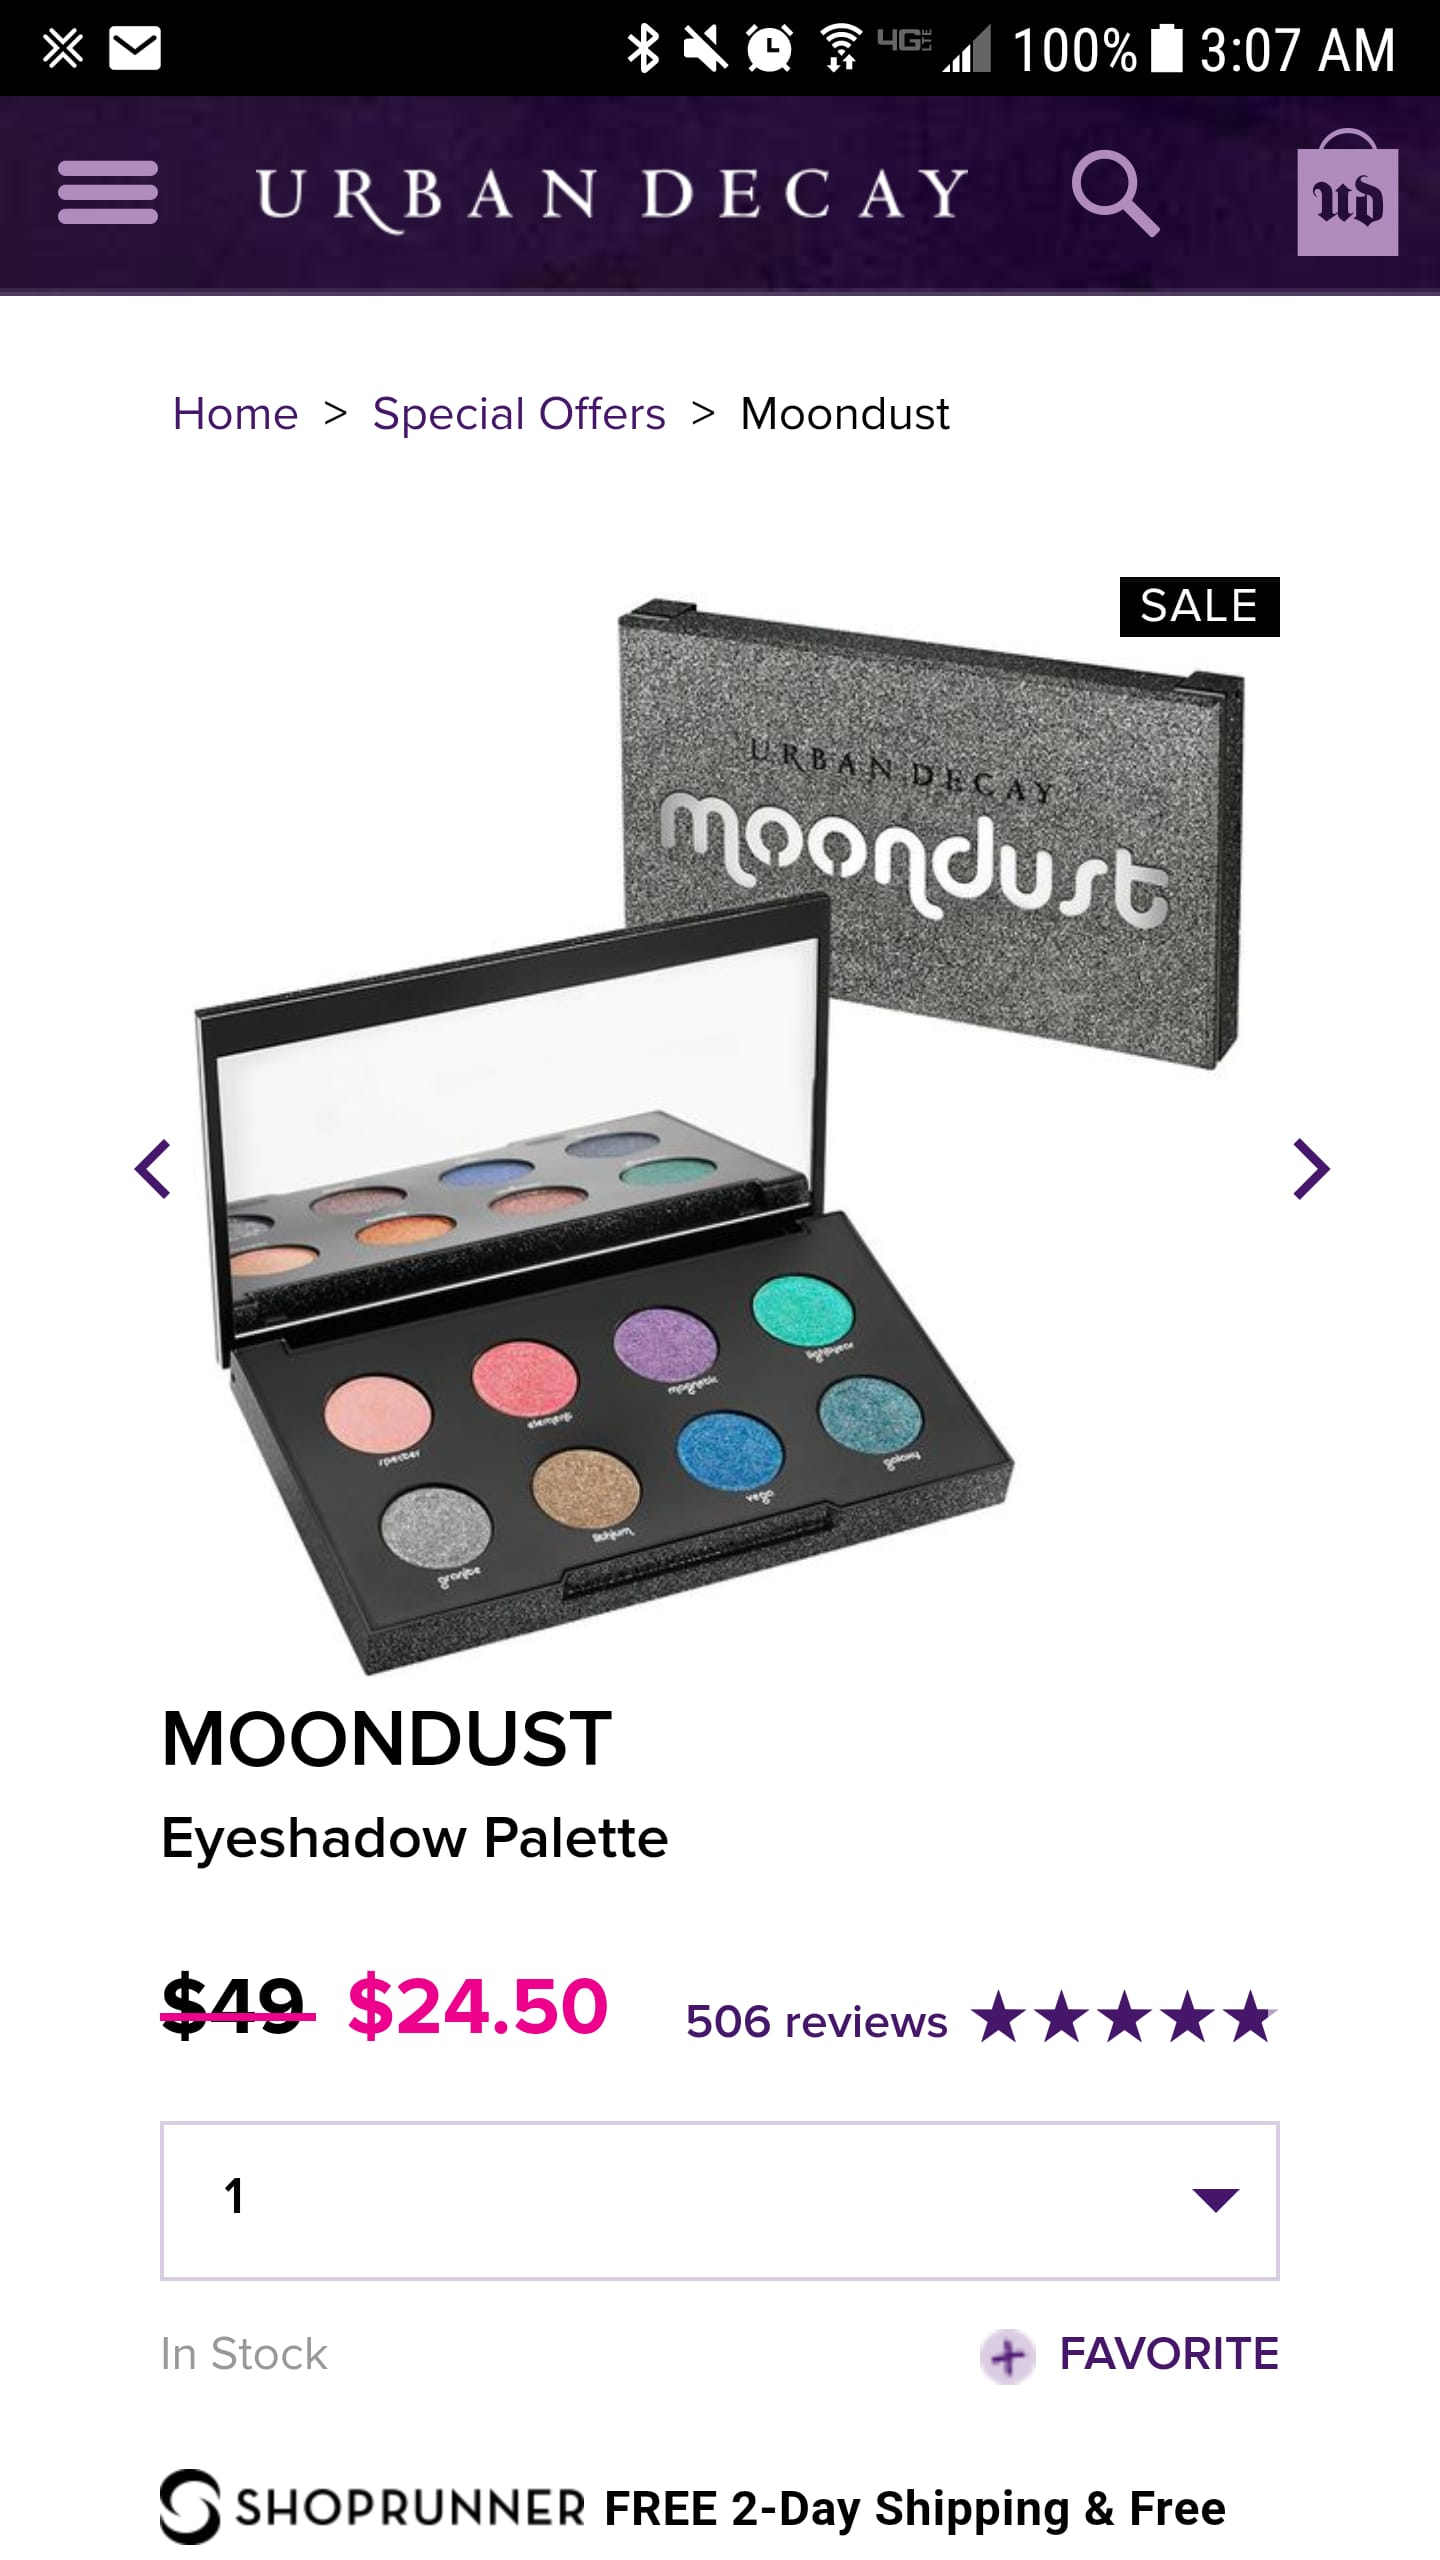 11/28 ONLY Urban Decay Moondust Palette $24.5